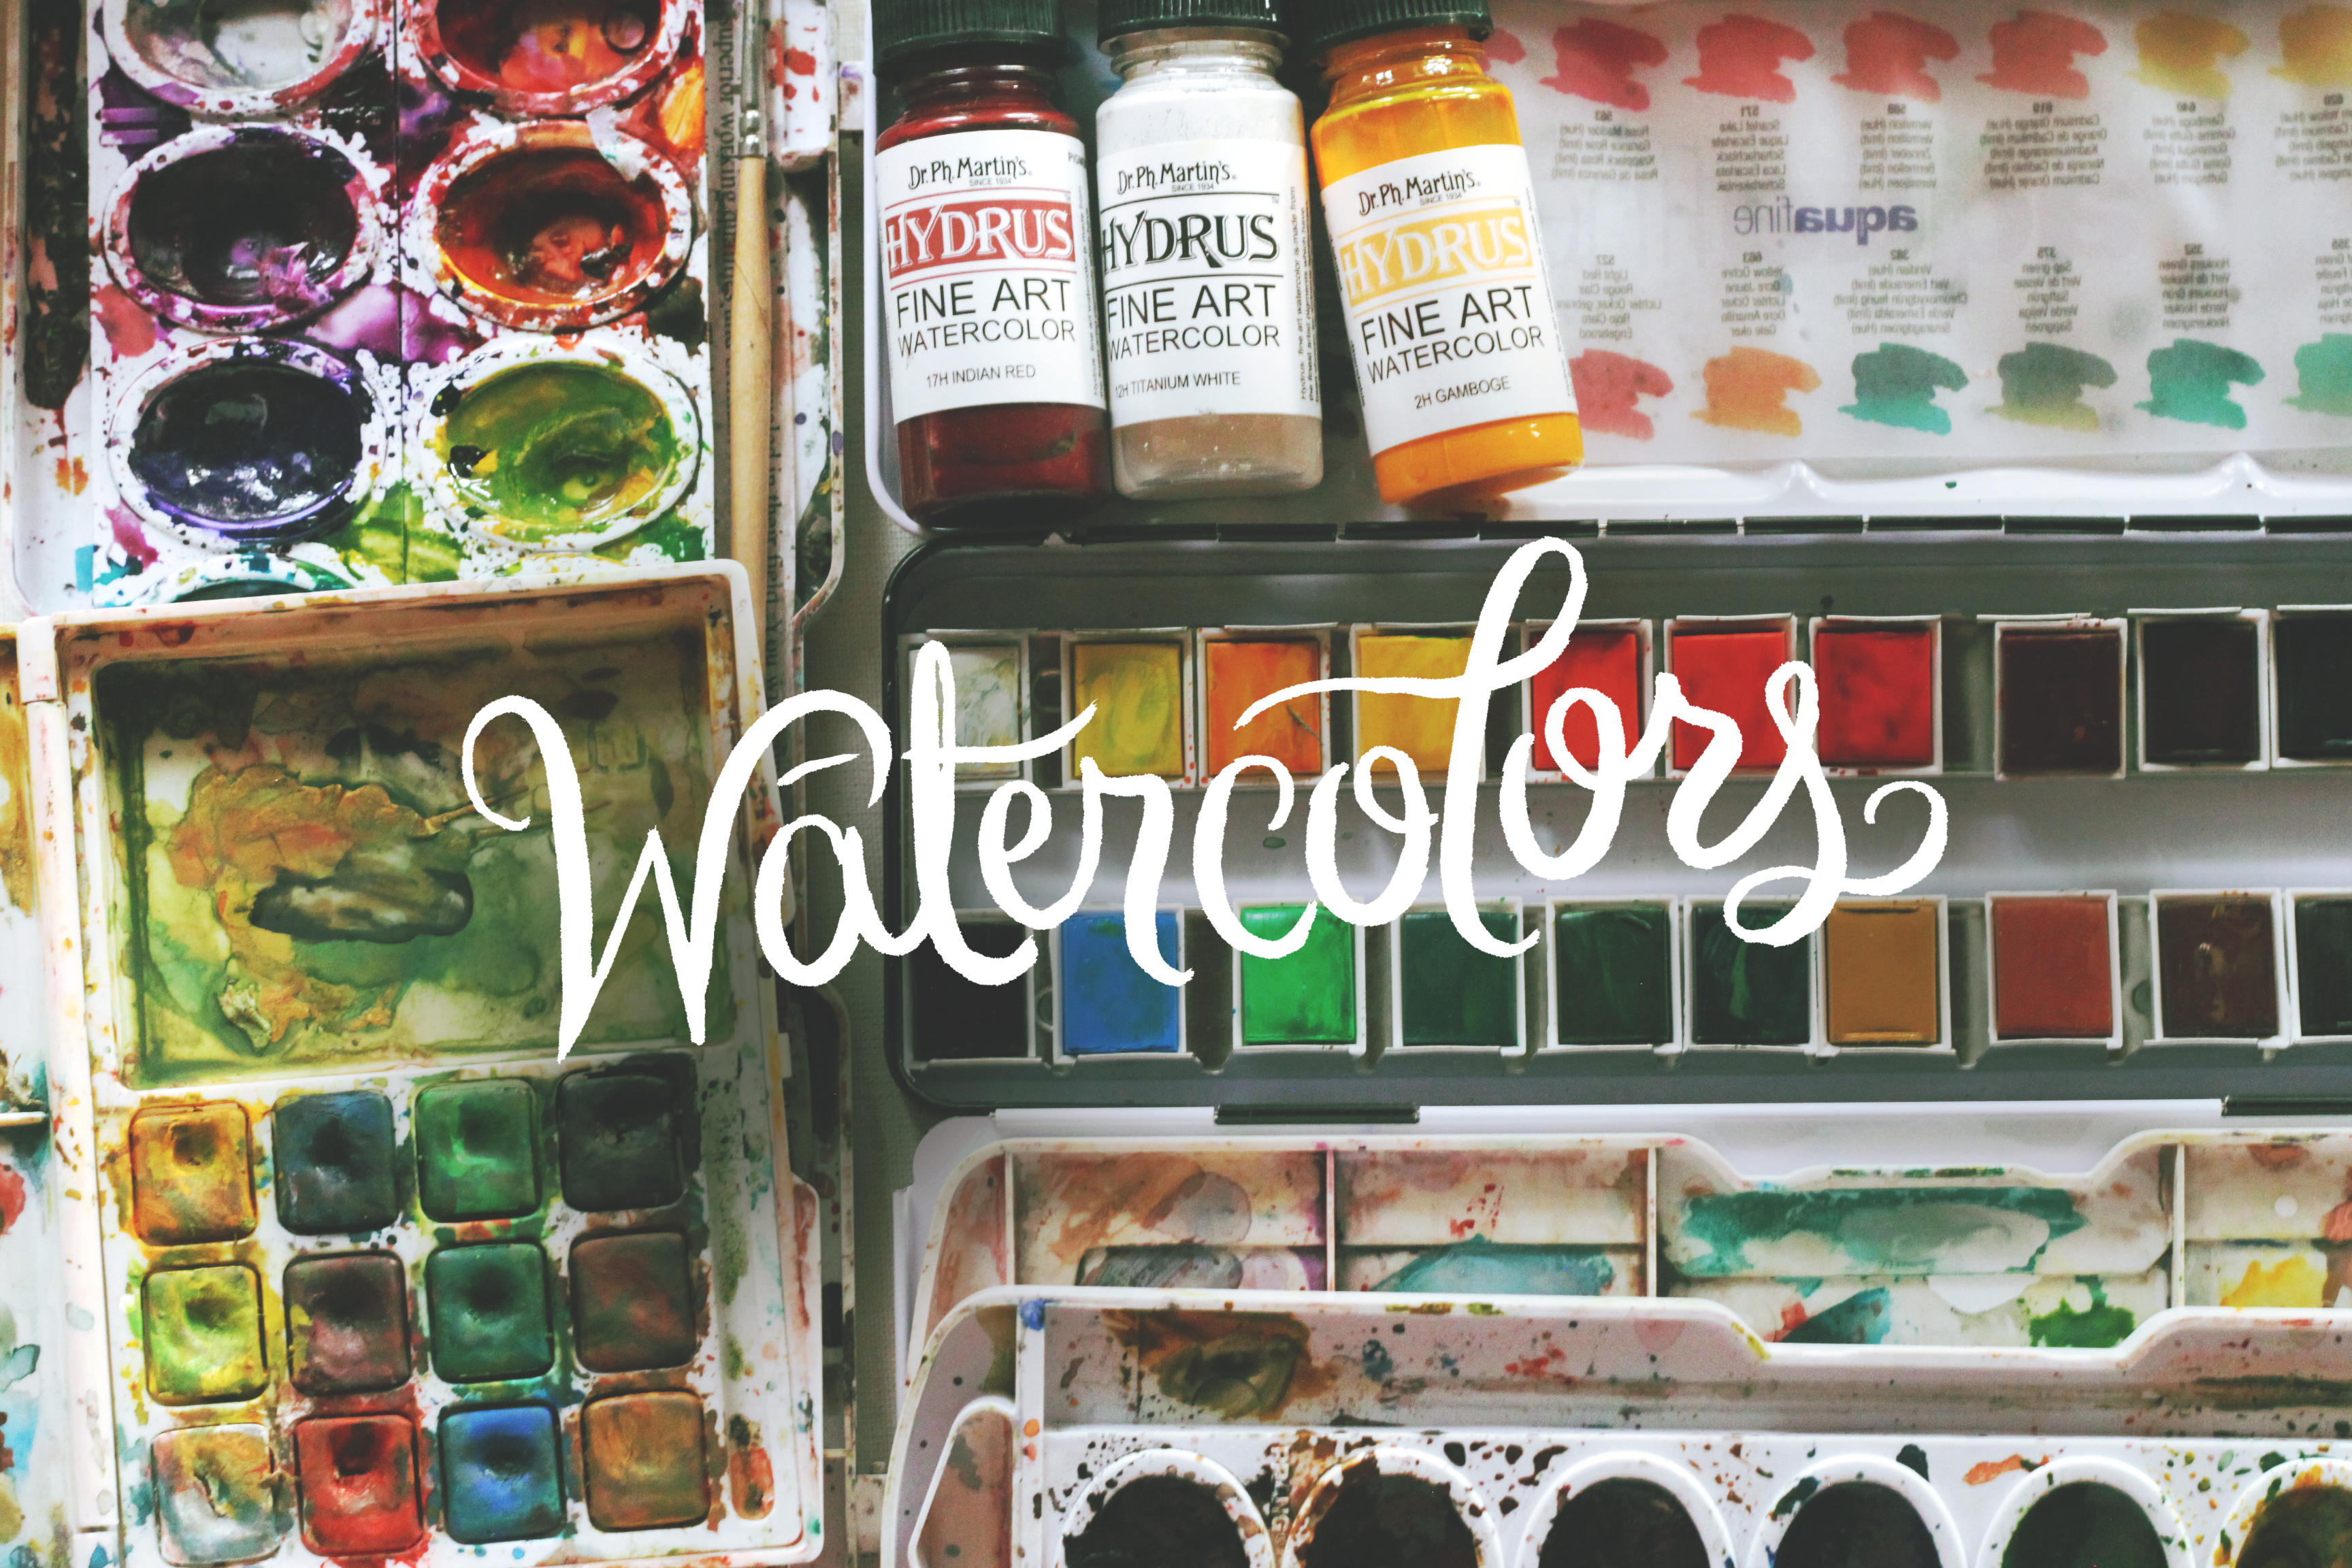 02 Watercolors